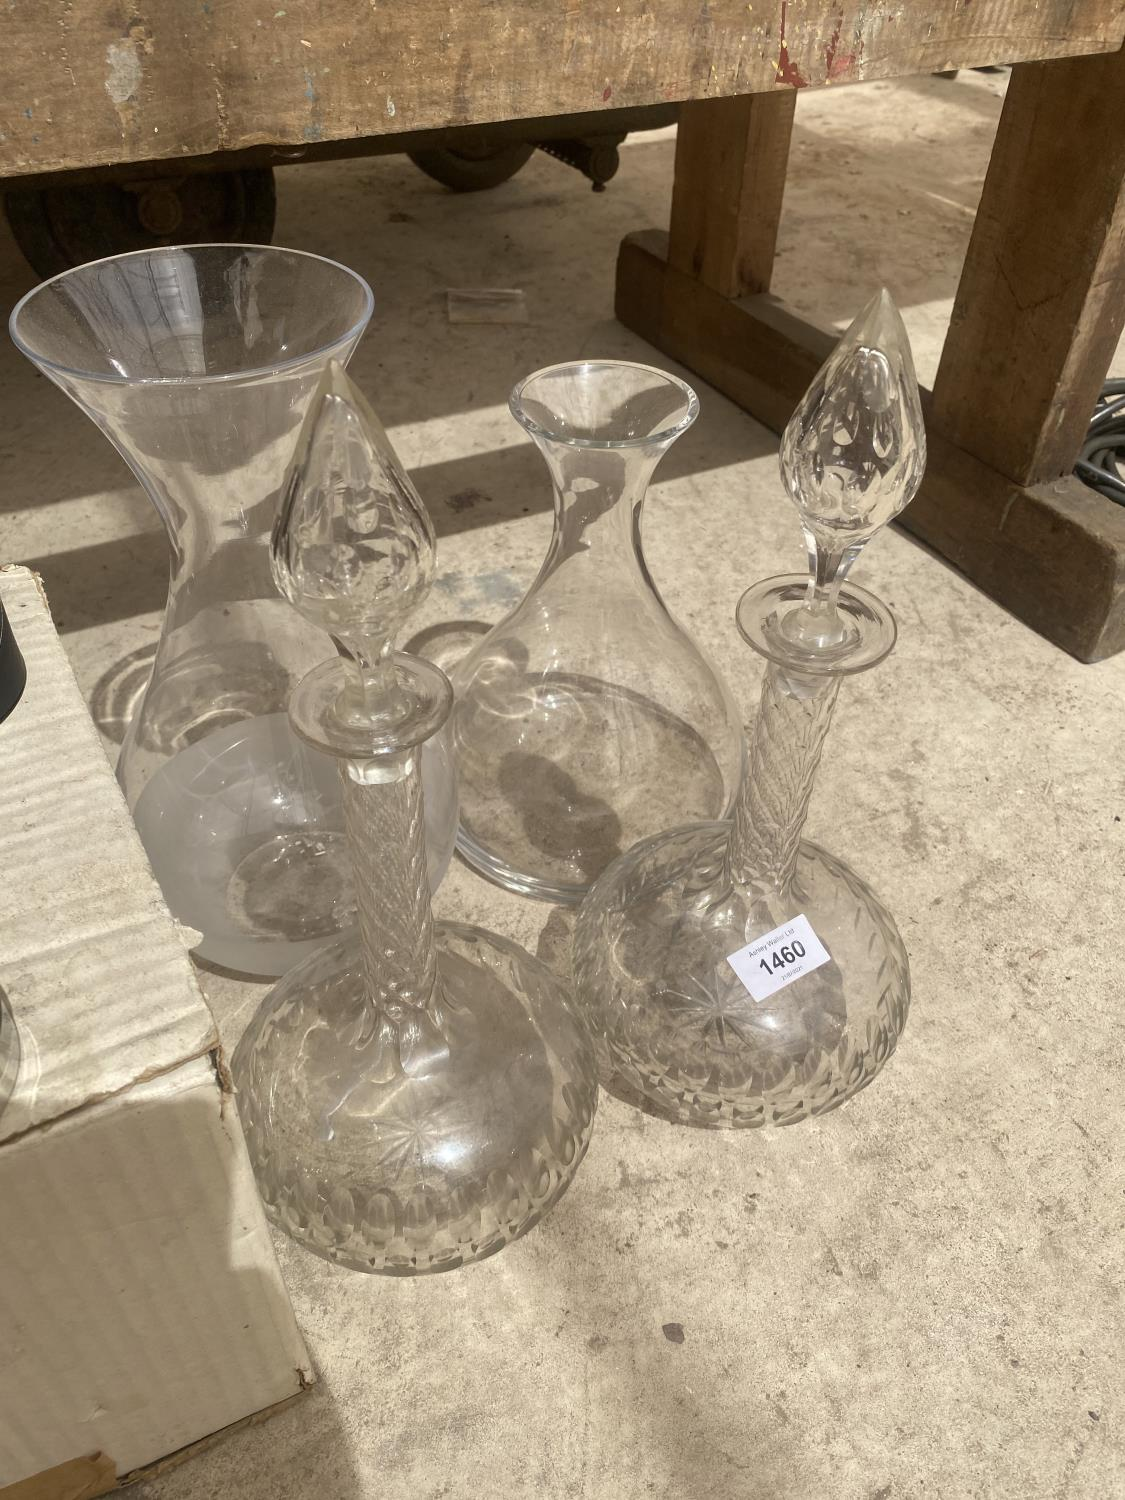 AN ASSORTMENT OF GLASS ITEMS TO INCLUDE VASES AND TWO DECANTORS ETC - Image 2 of 4